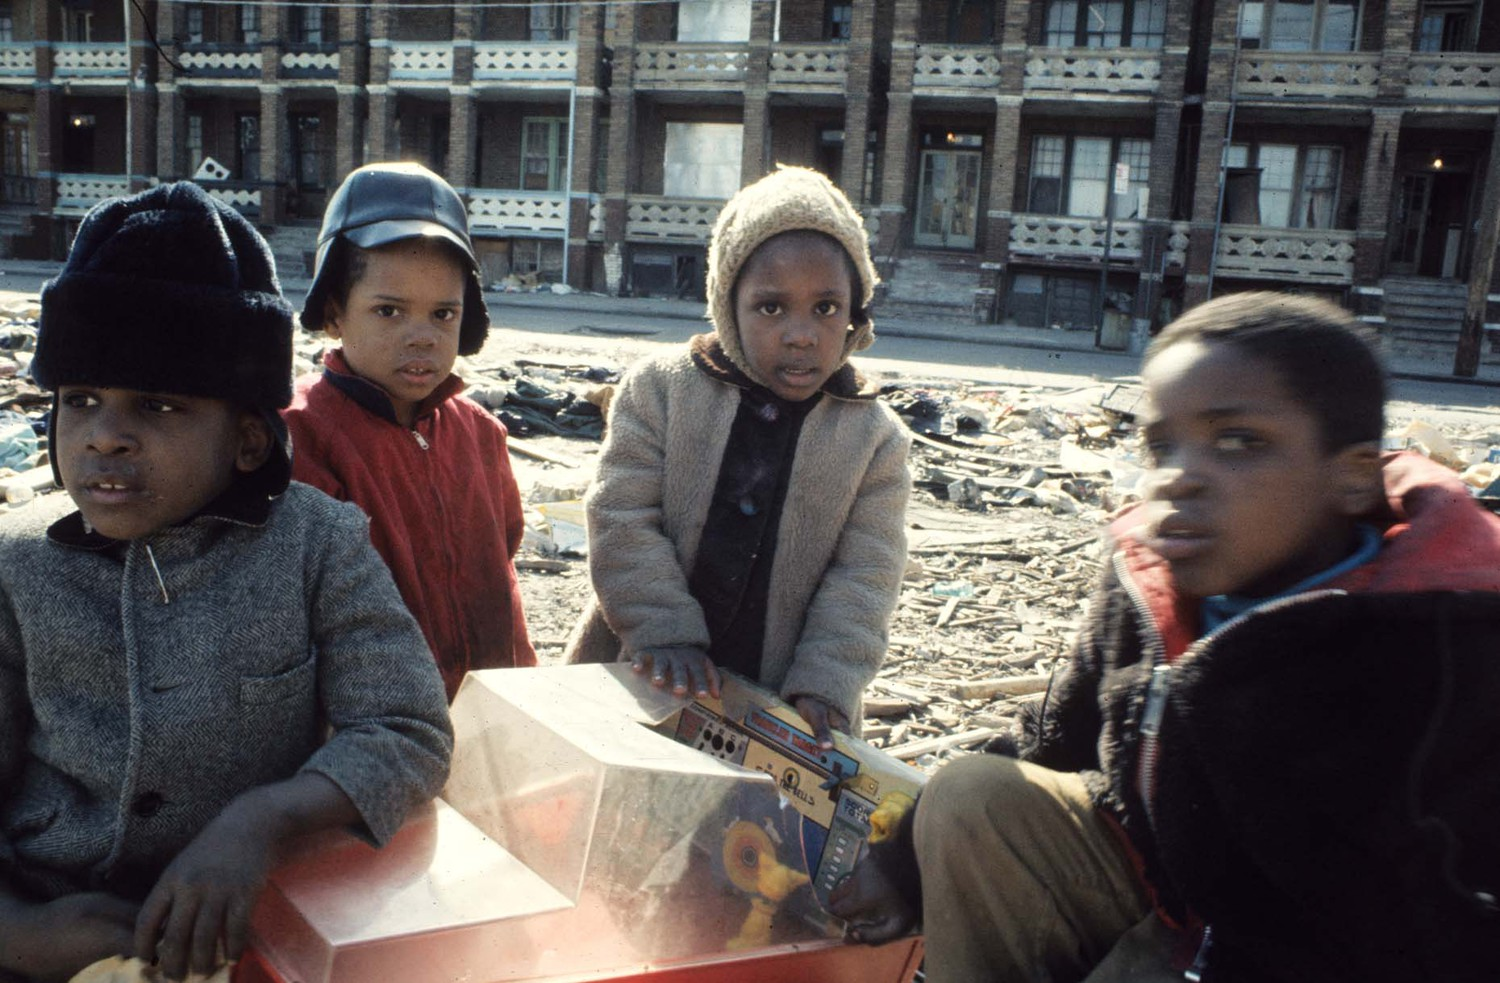 Children playing with a broken toy. Coney Island, Brooklyn, 1971.